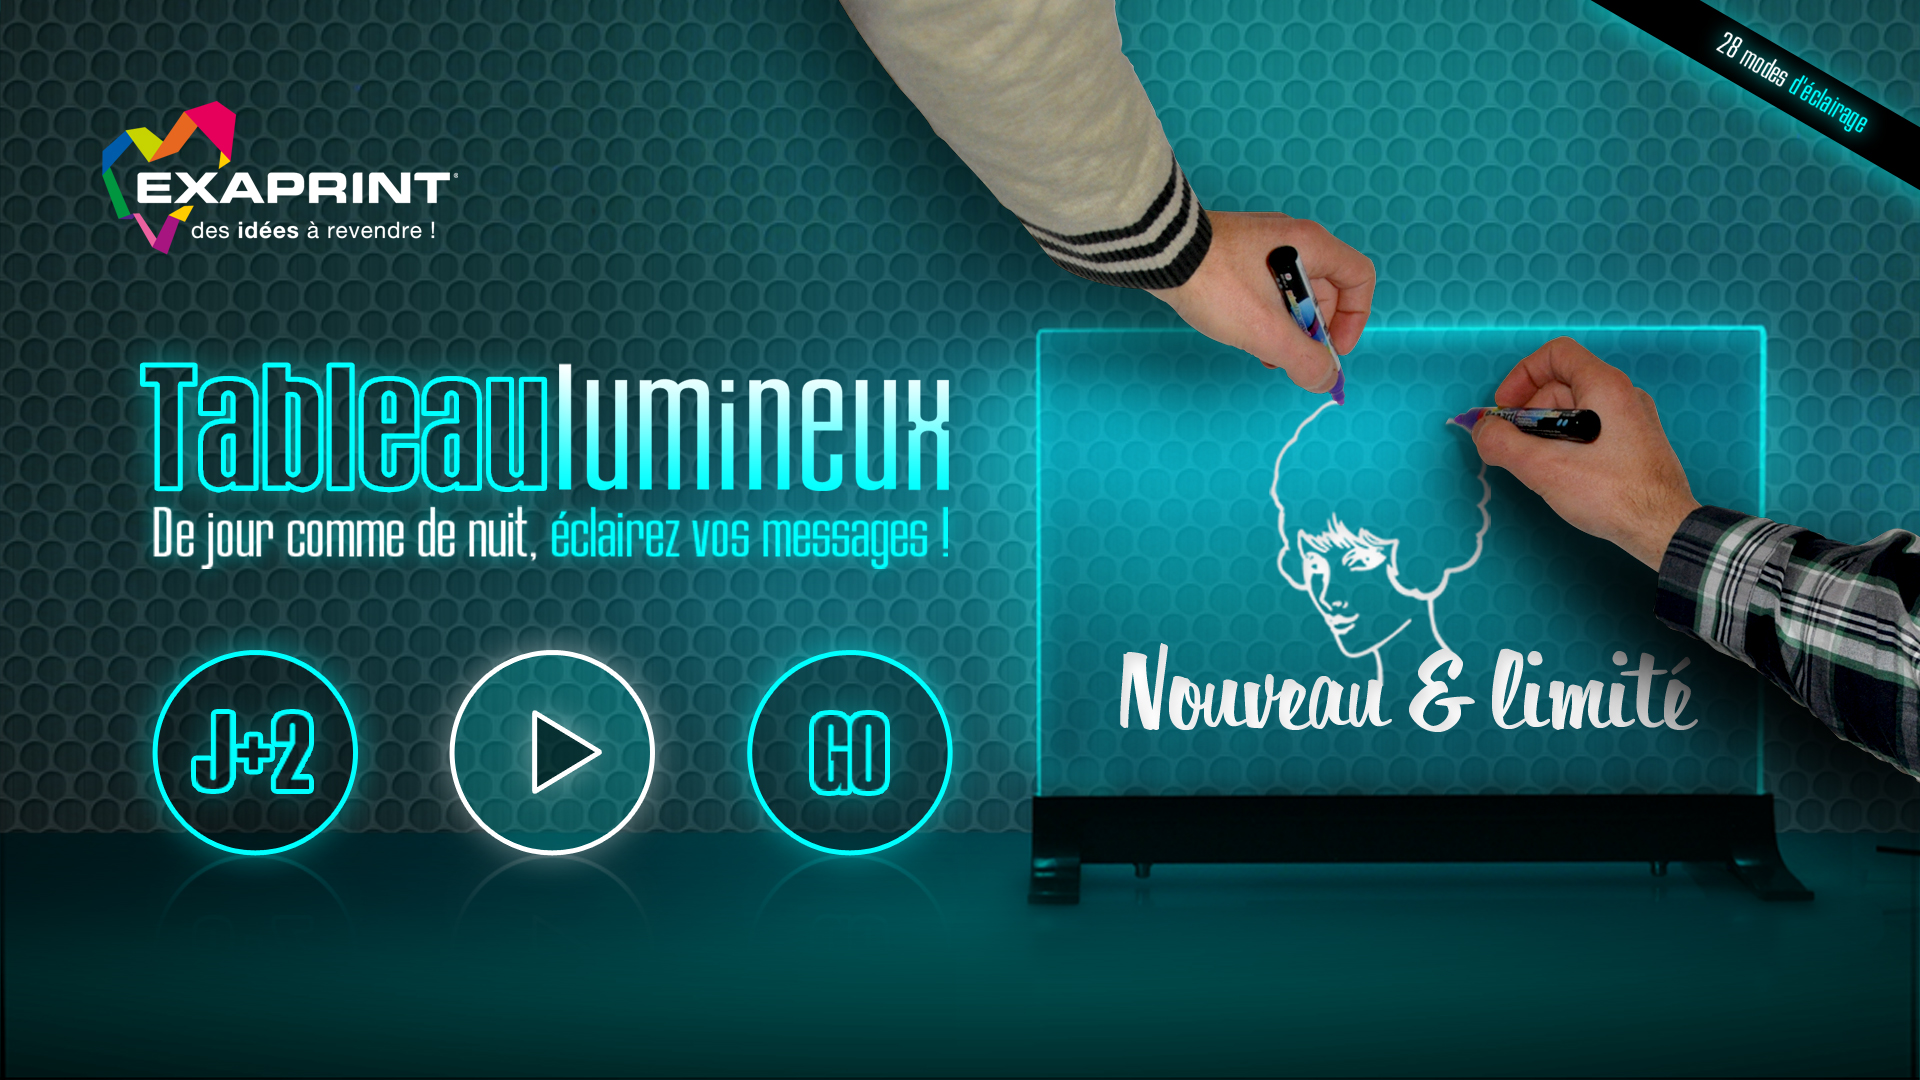 exaprint-tableau-lumineux-creation-logo-animation-site-internet-mailing-communication-caconcept-alexis-cretin-graphiste